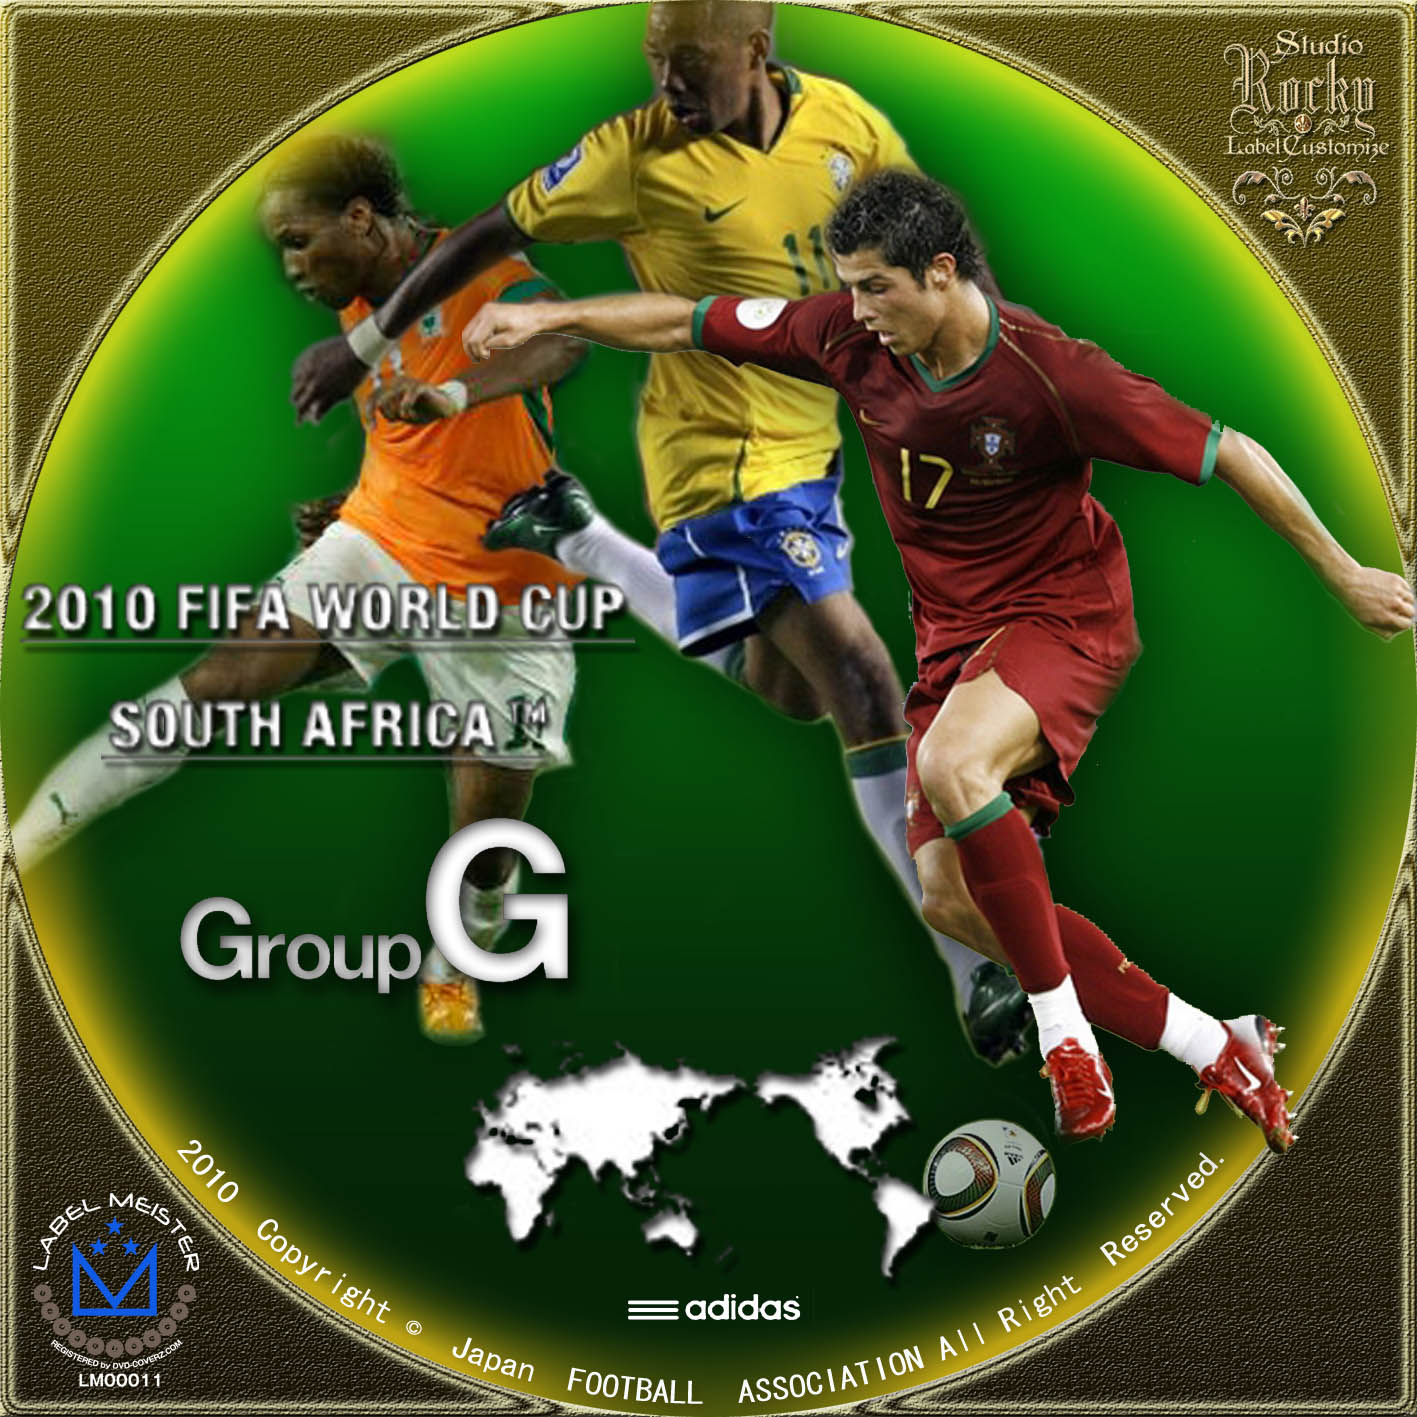 2010 FIFA World Cup South Africa / Group G